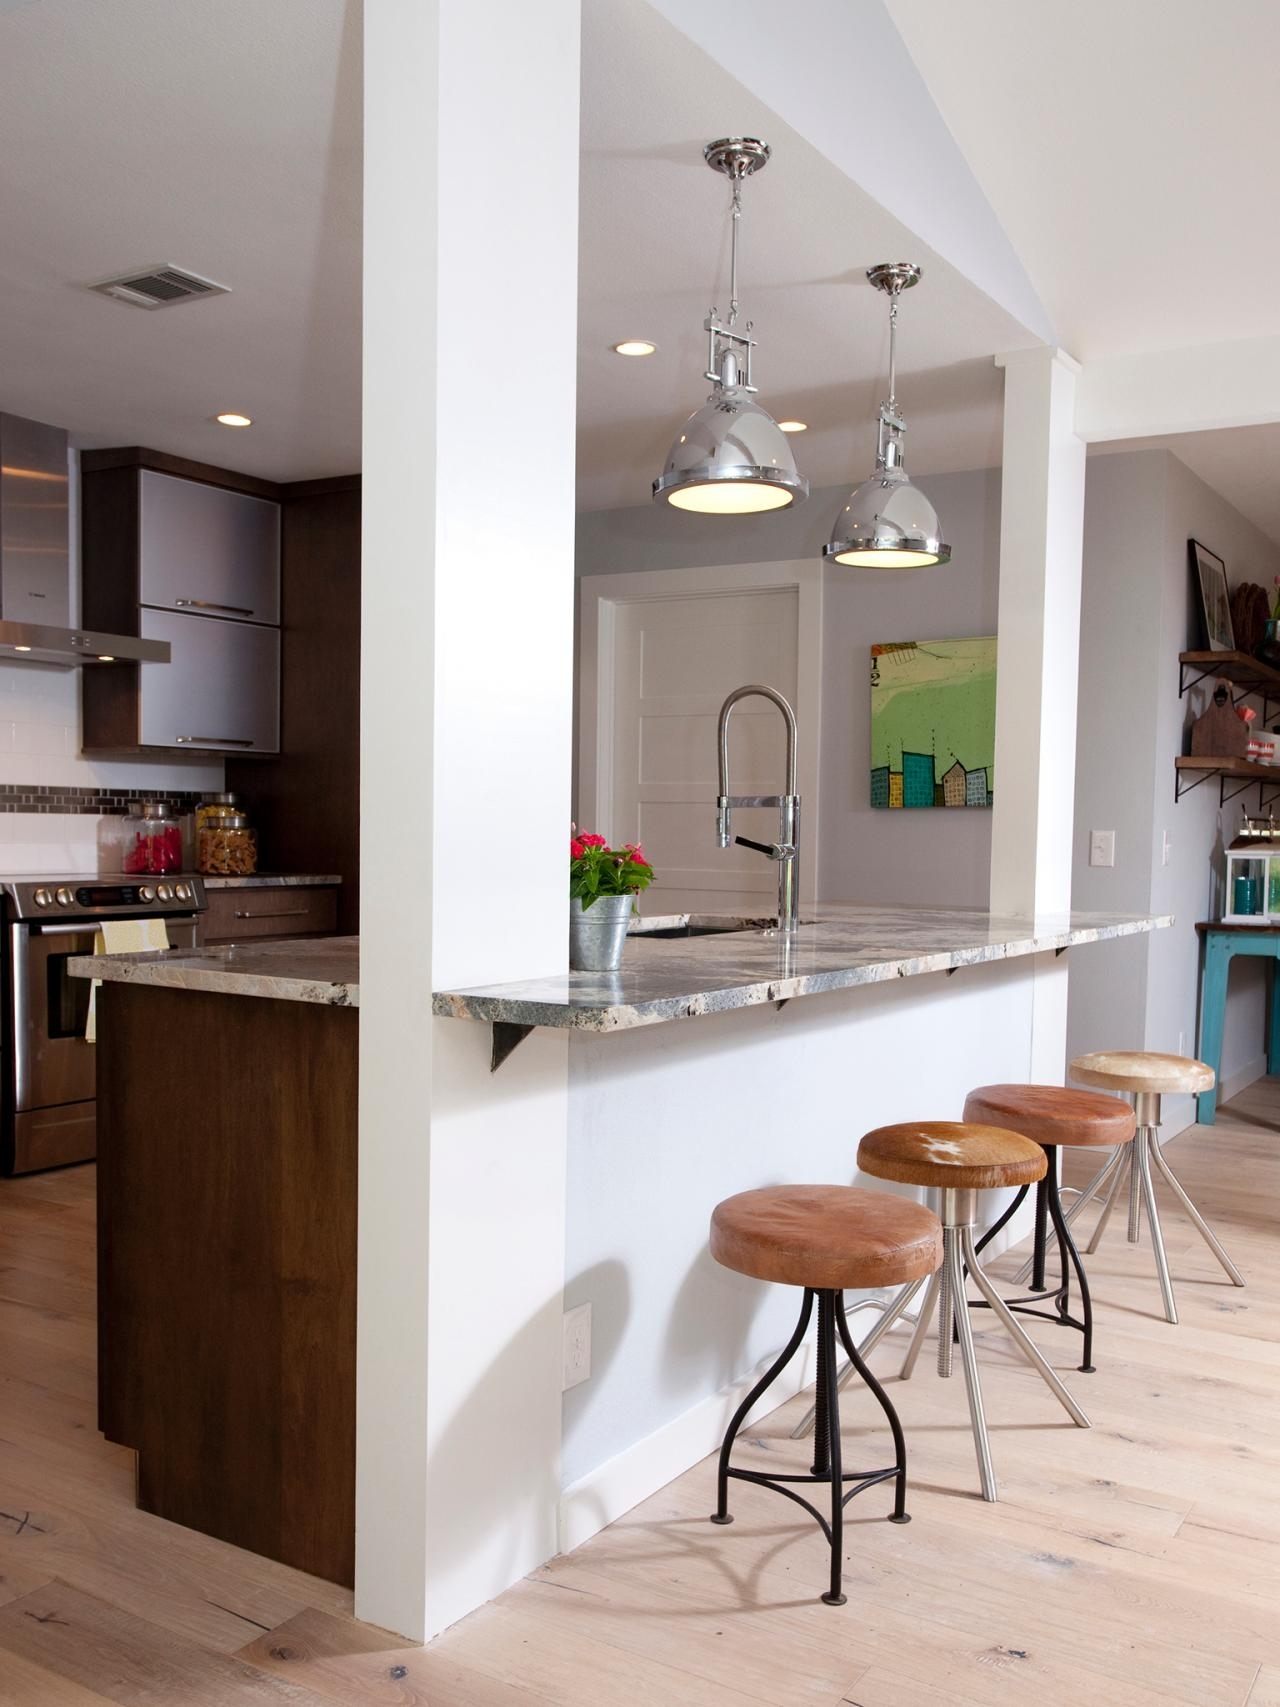 10 Awesome Small Kitchen Design Layout Ideas %name